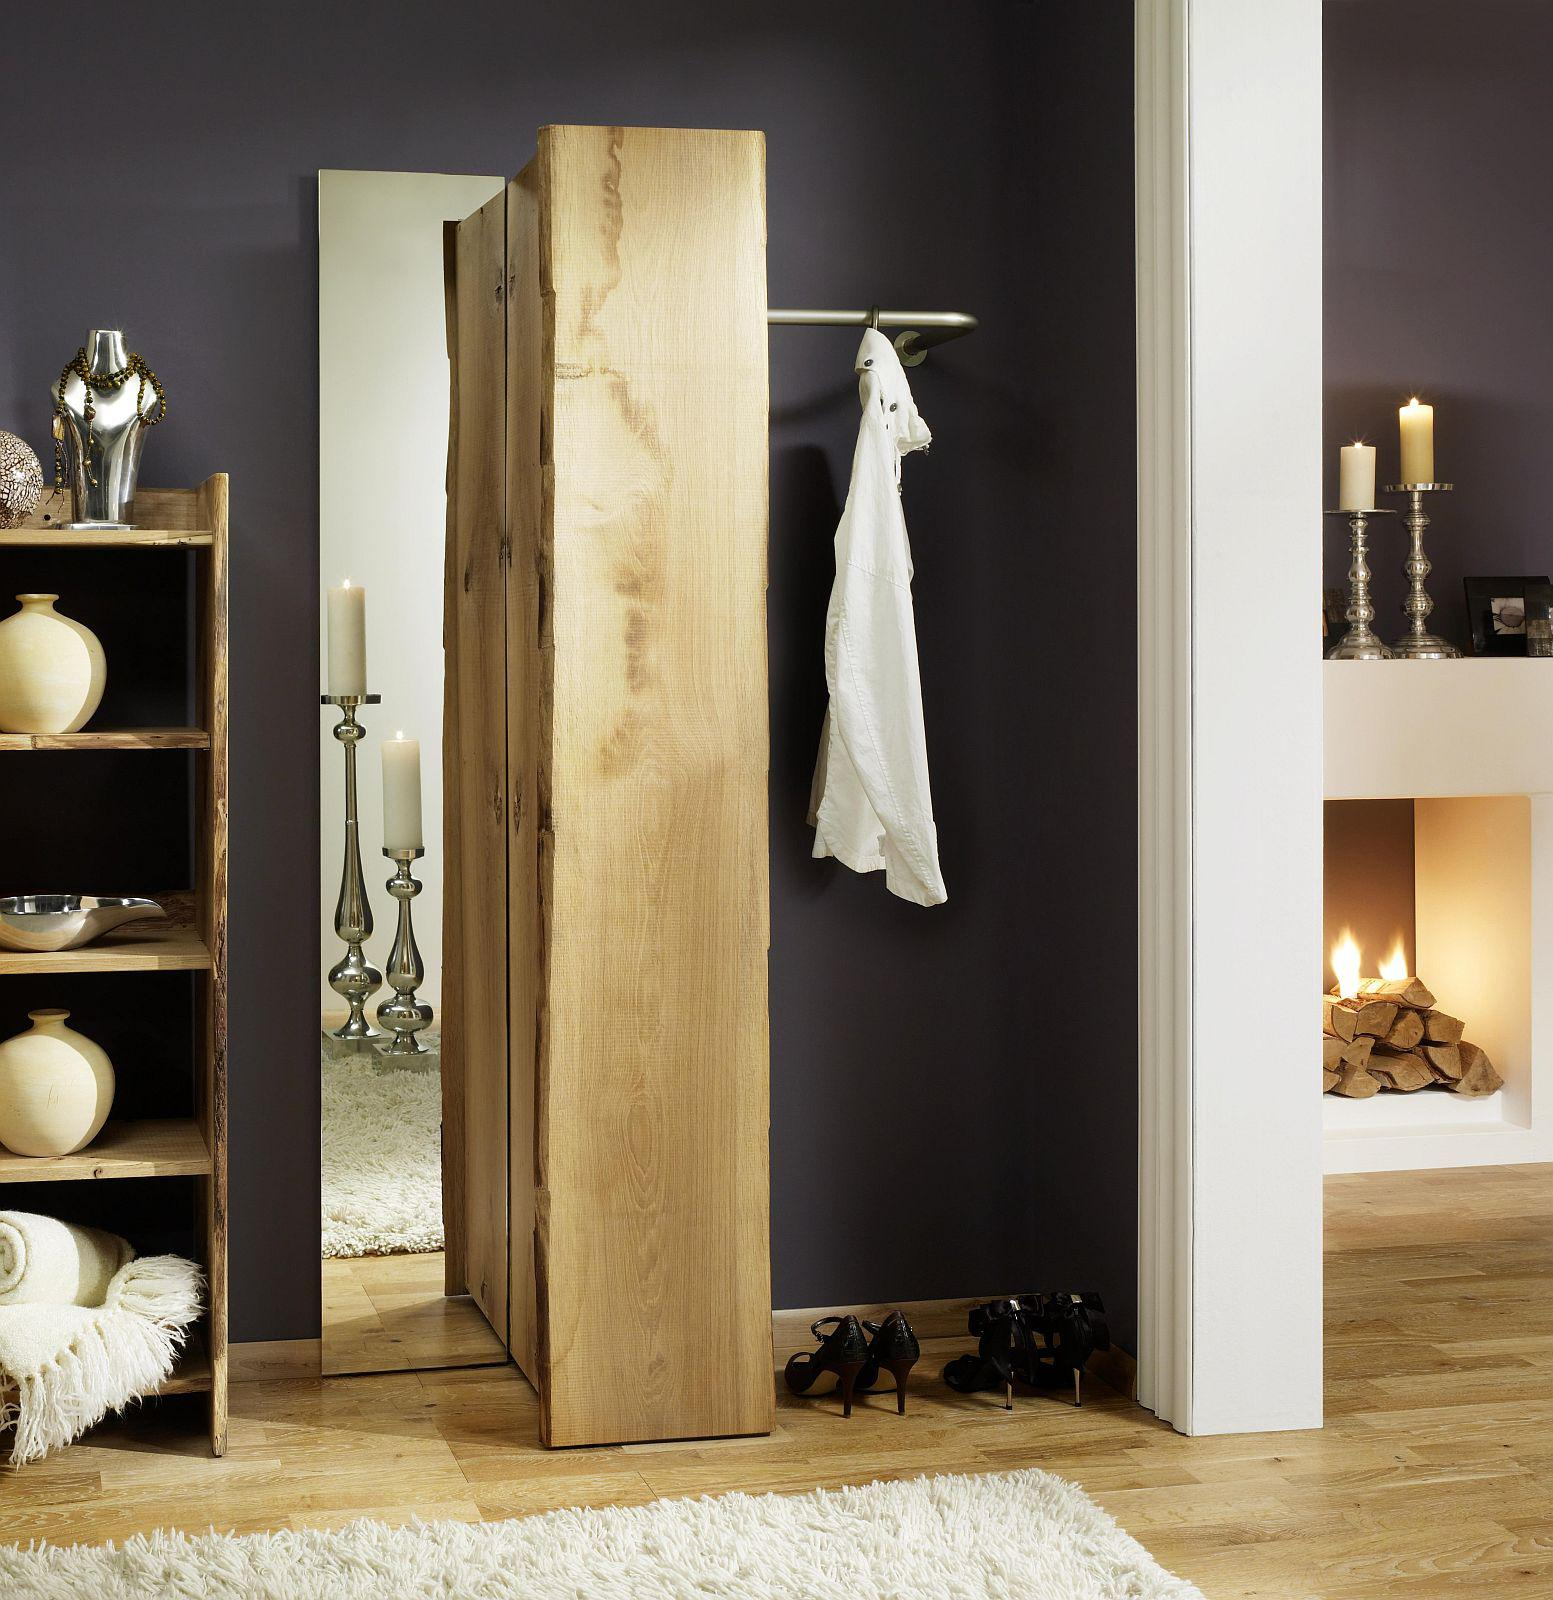 garderobe set 4 teilig landhausstil eiche massiv s gerauh. Black Bedroom Furniture Sets. Home Design Ideas